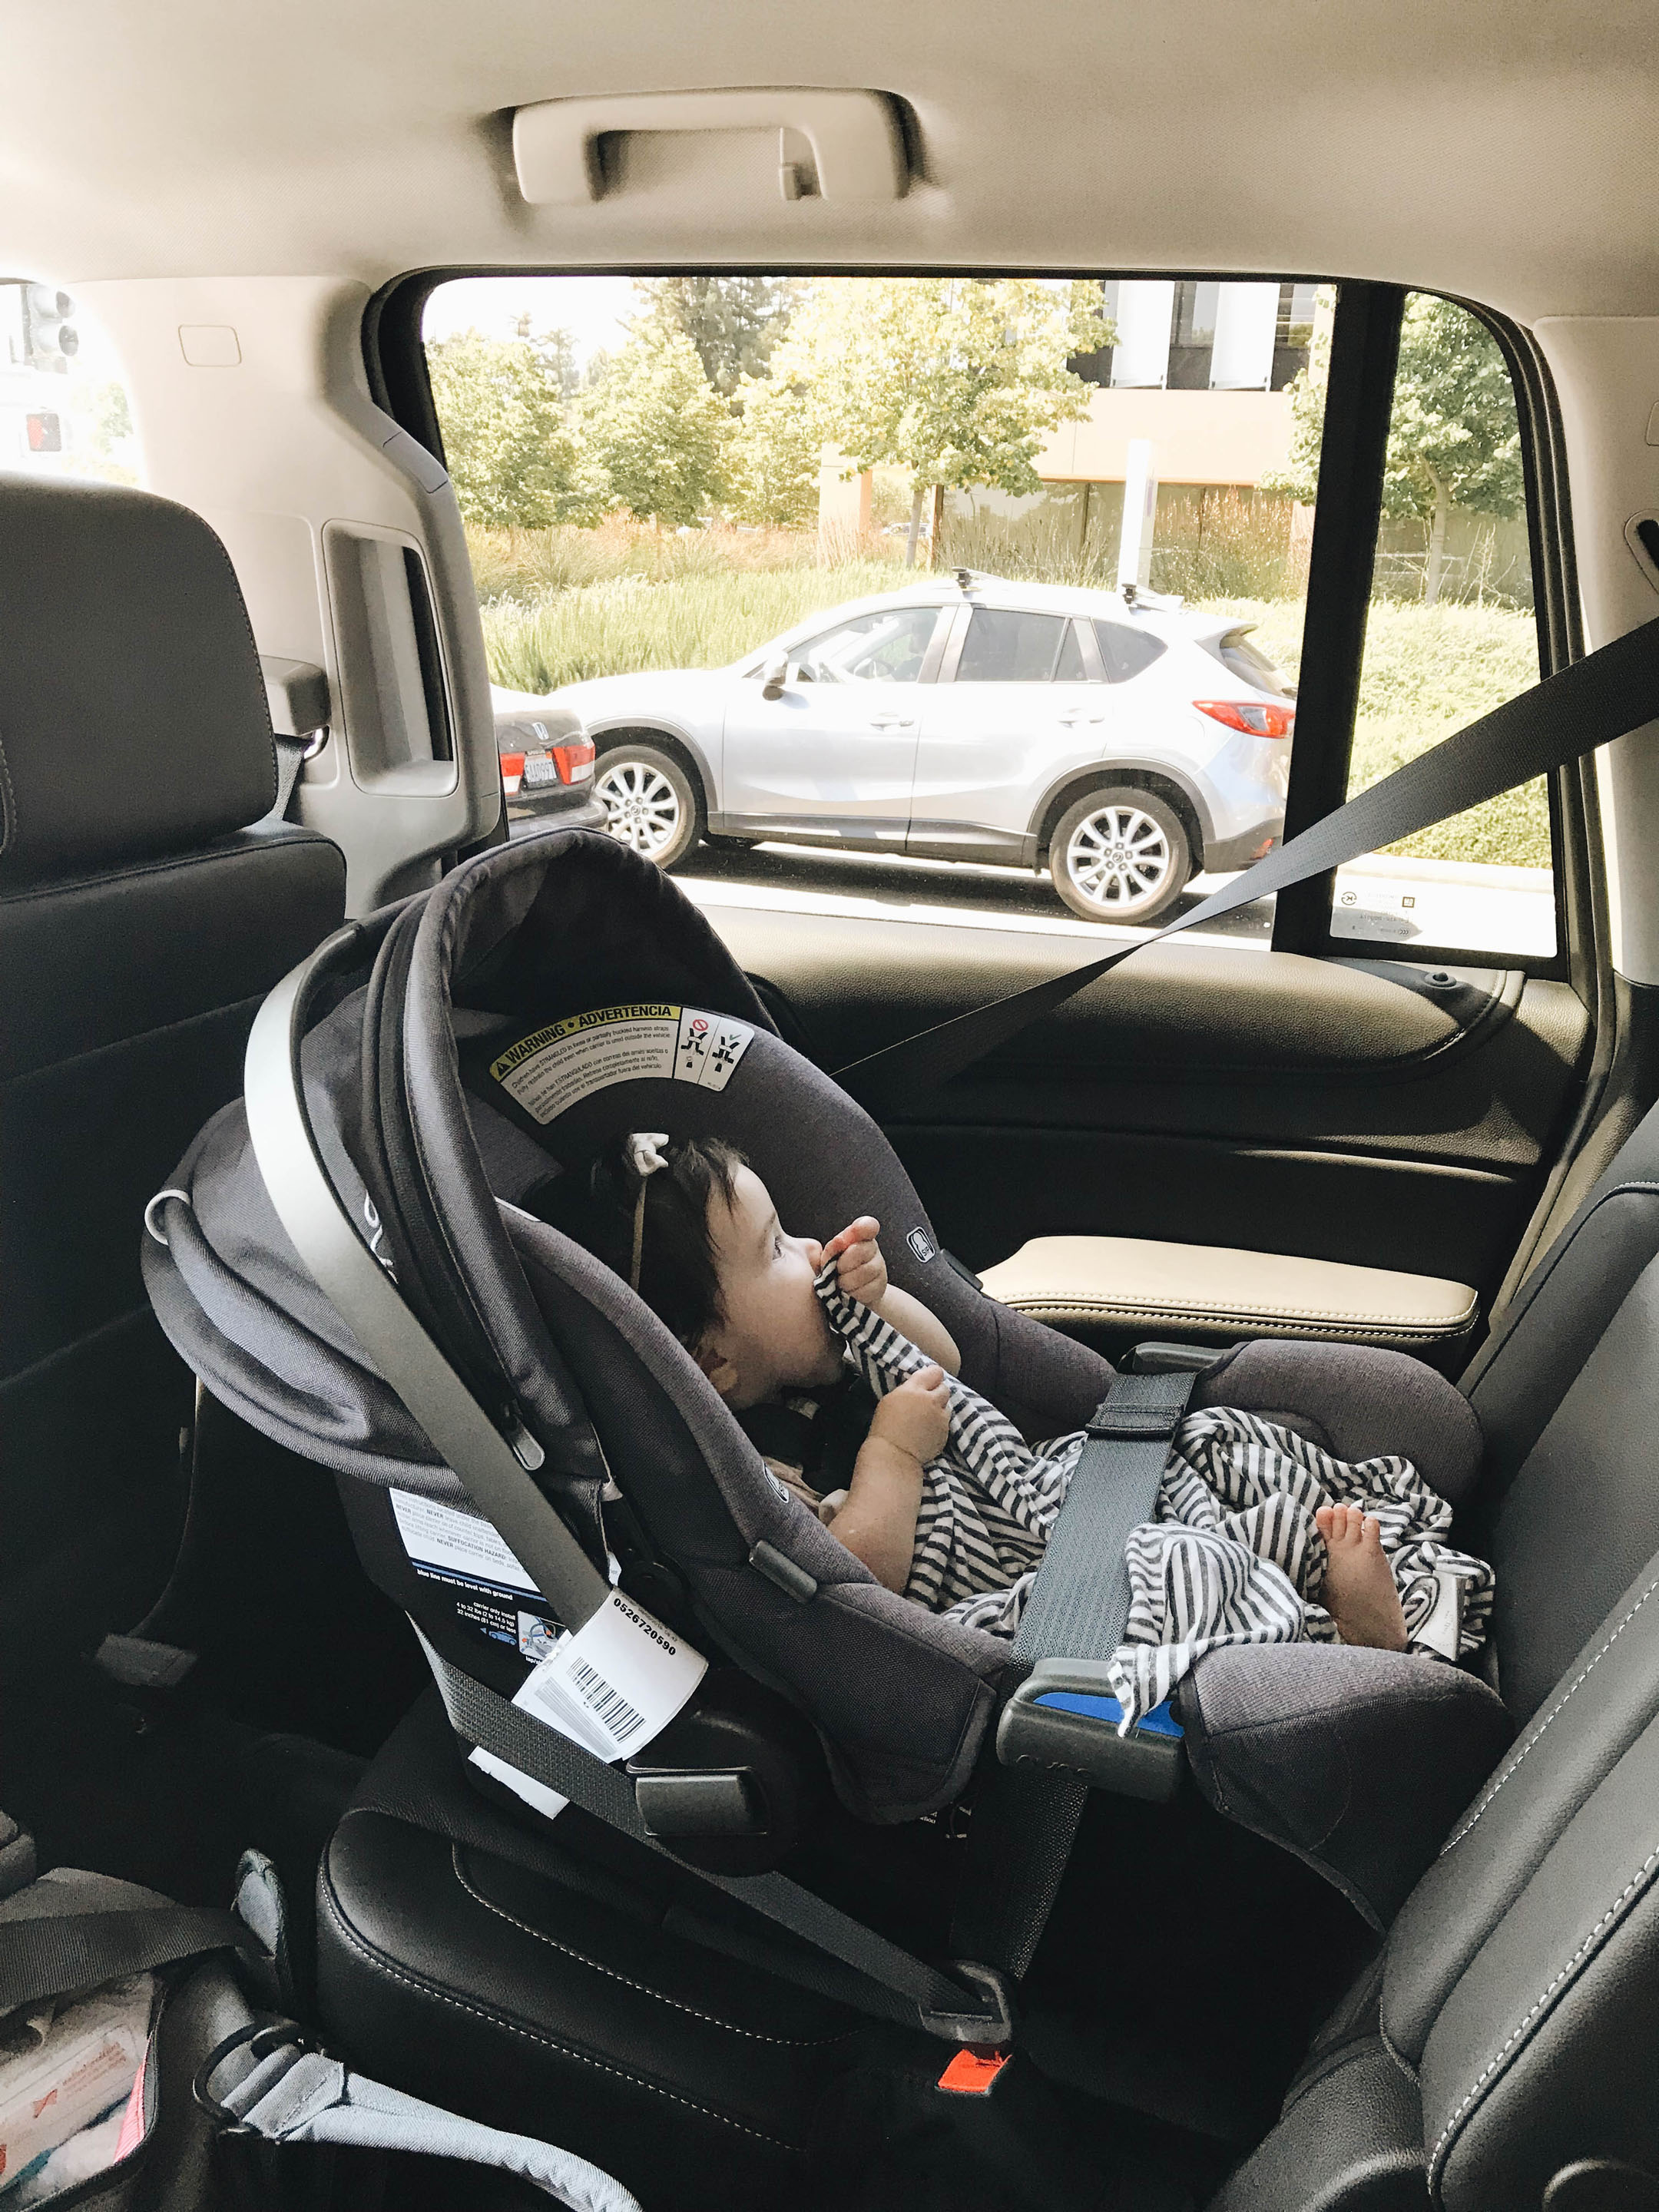 Nuna carseat without base